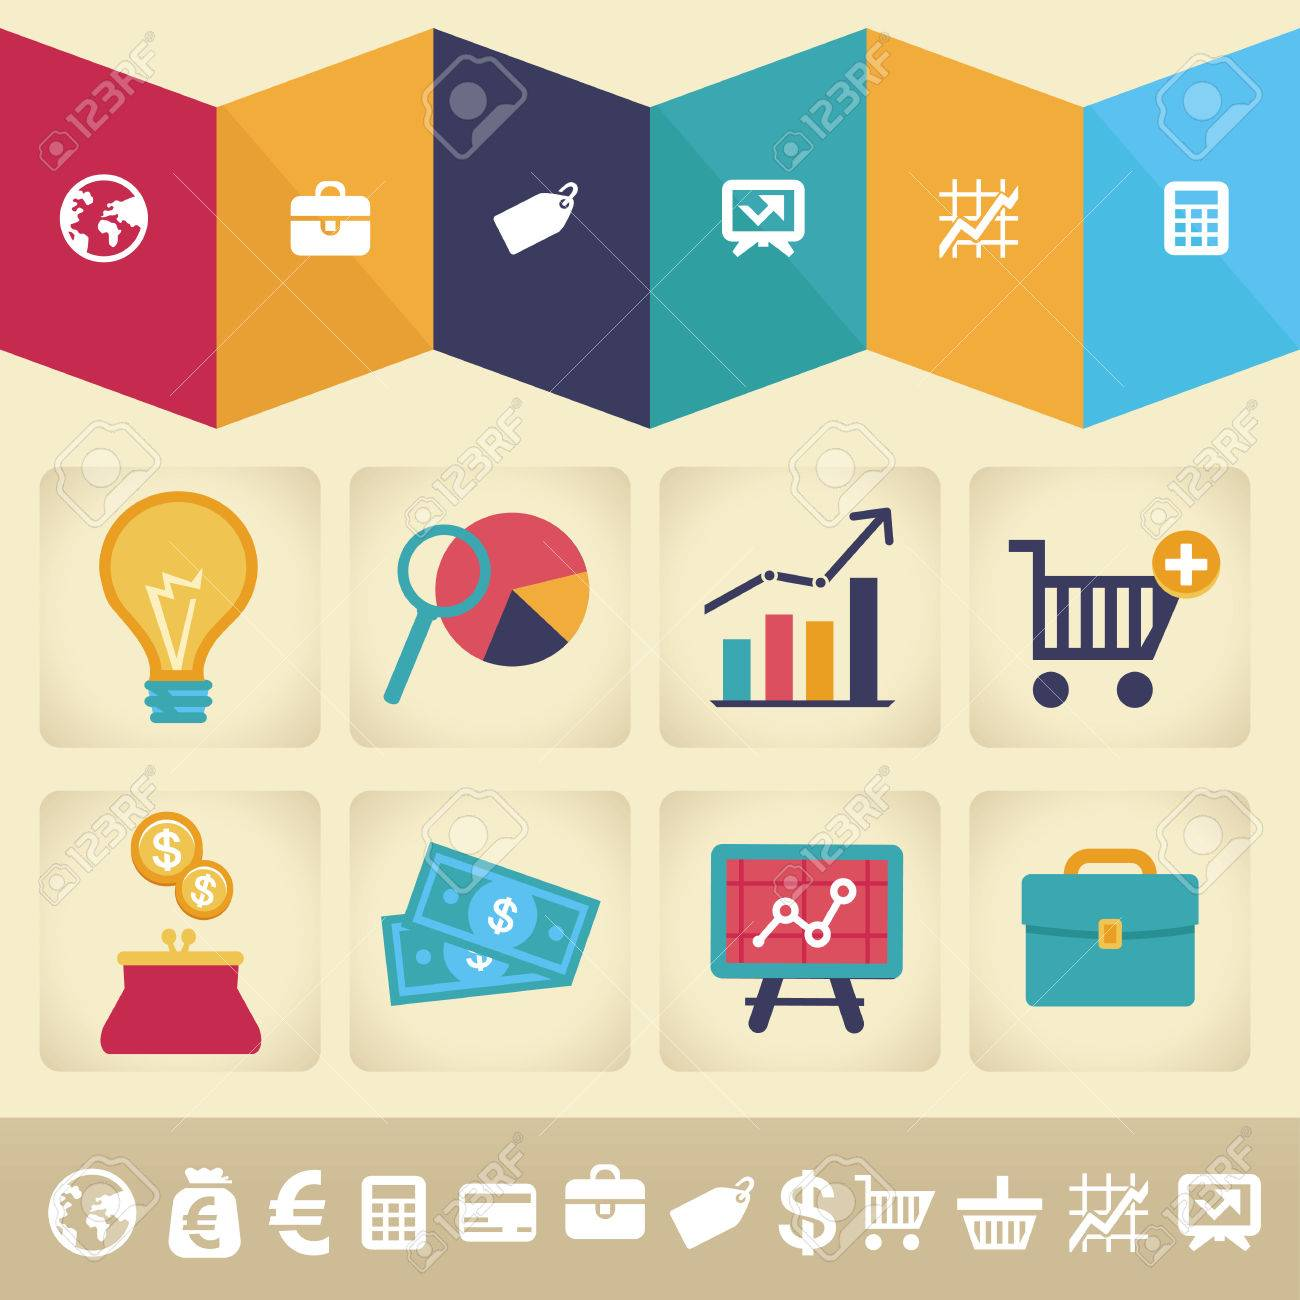 Vector icons and infographic design element in flat retro style - finance and business illustration Stock Vector - 22677504